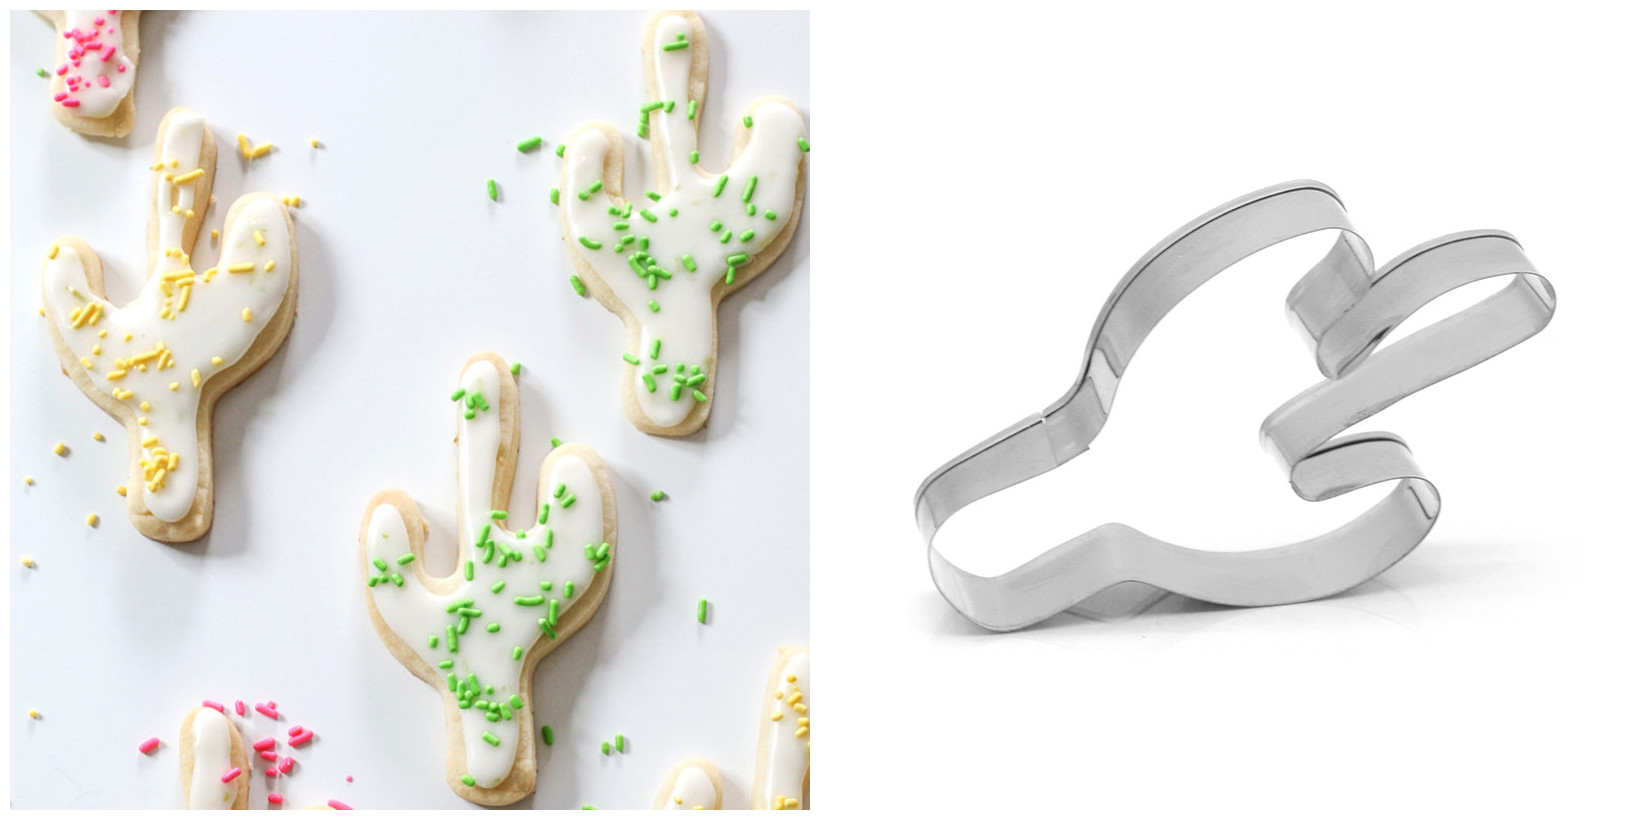 Cookie Cutter Stainless Steel Cactus Shape Cookie Cutters Biscuit Candy Chocolate Mold Fondant Cutter Kitchen Baking Tools